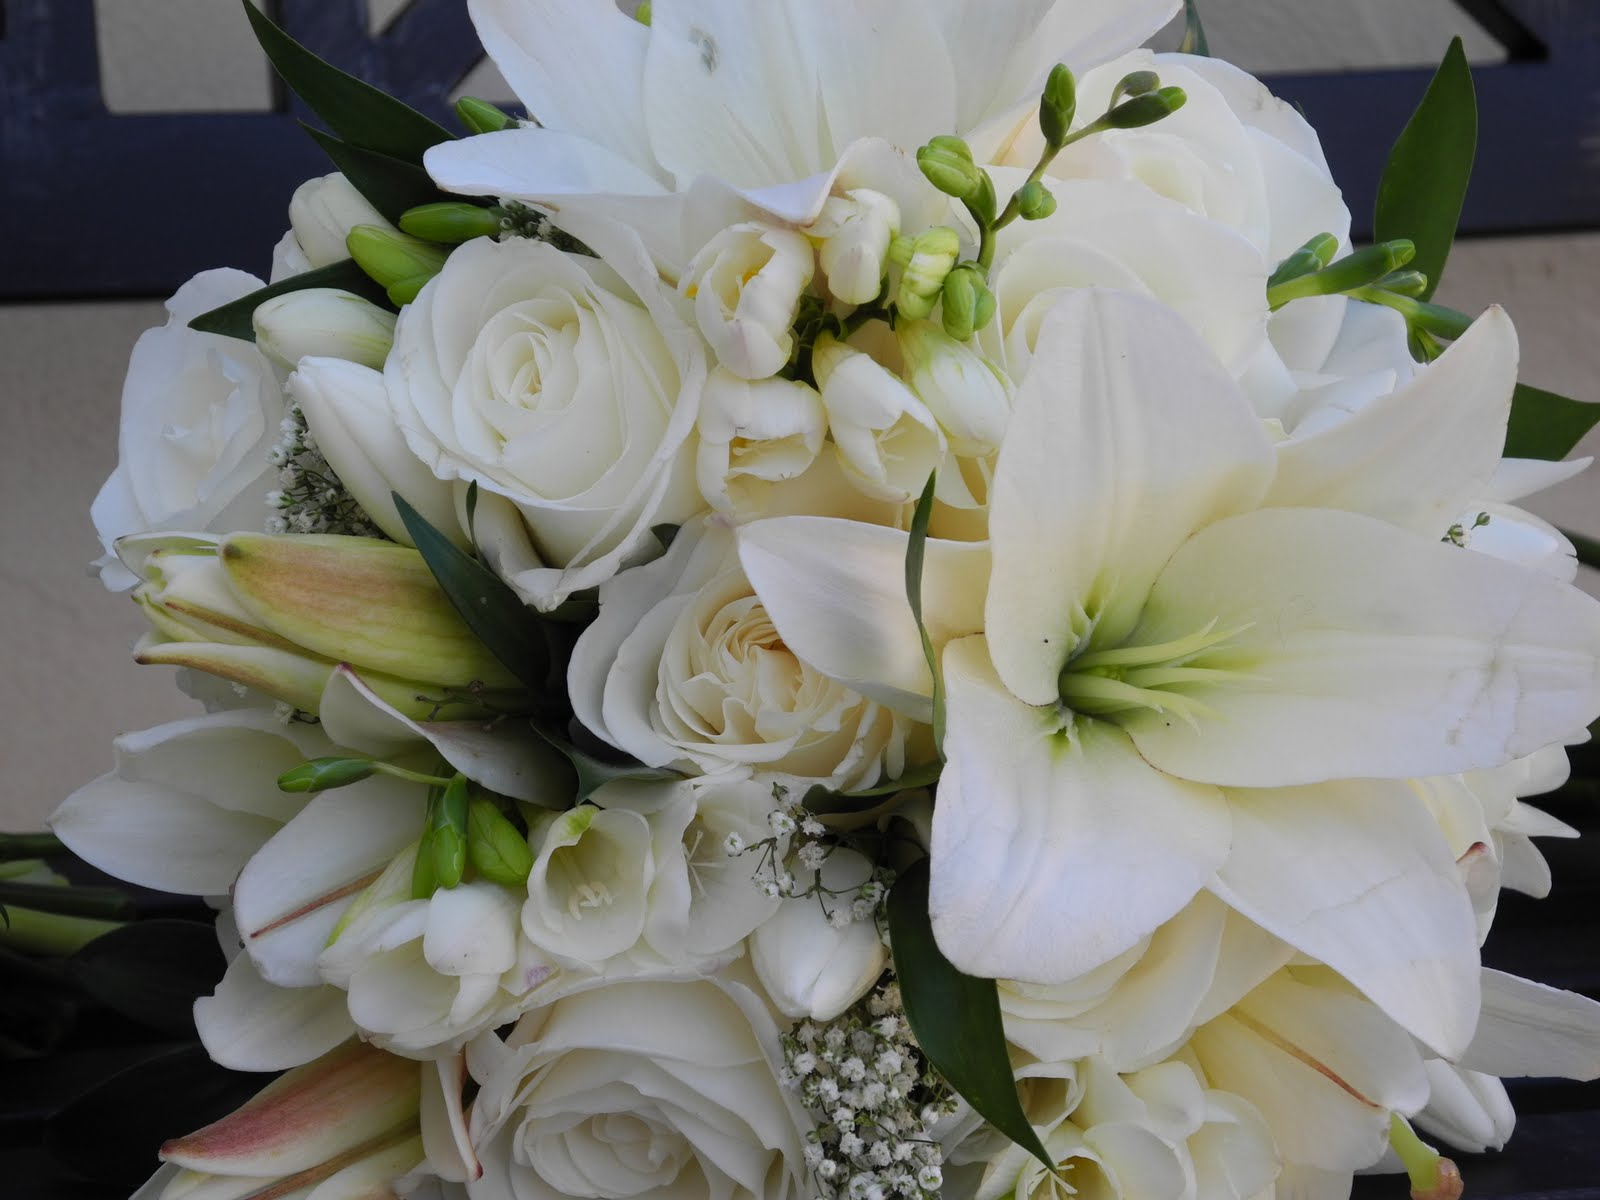 Wedding Flowers Roses And Lilies : The flower girl white and gray wedding flowers